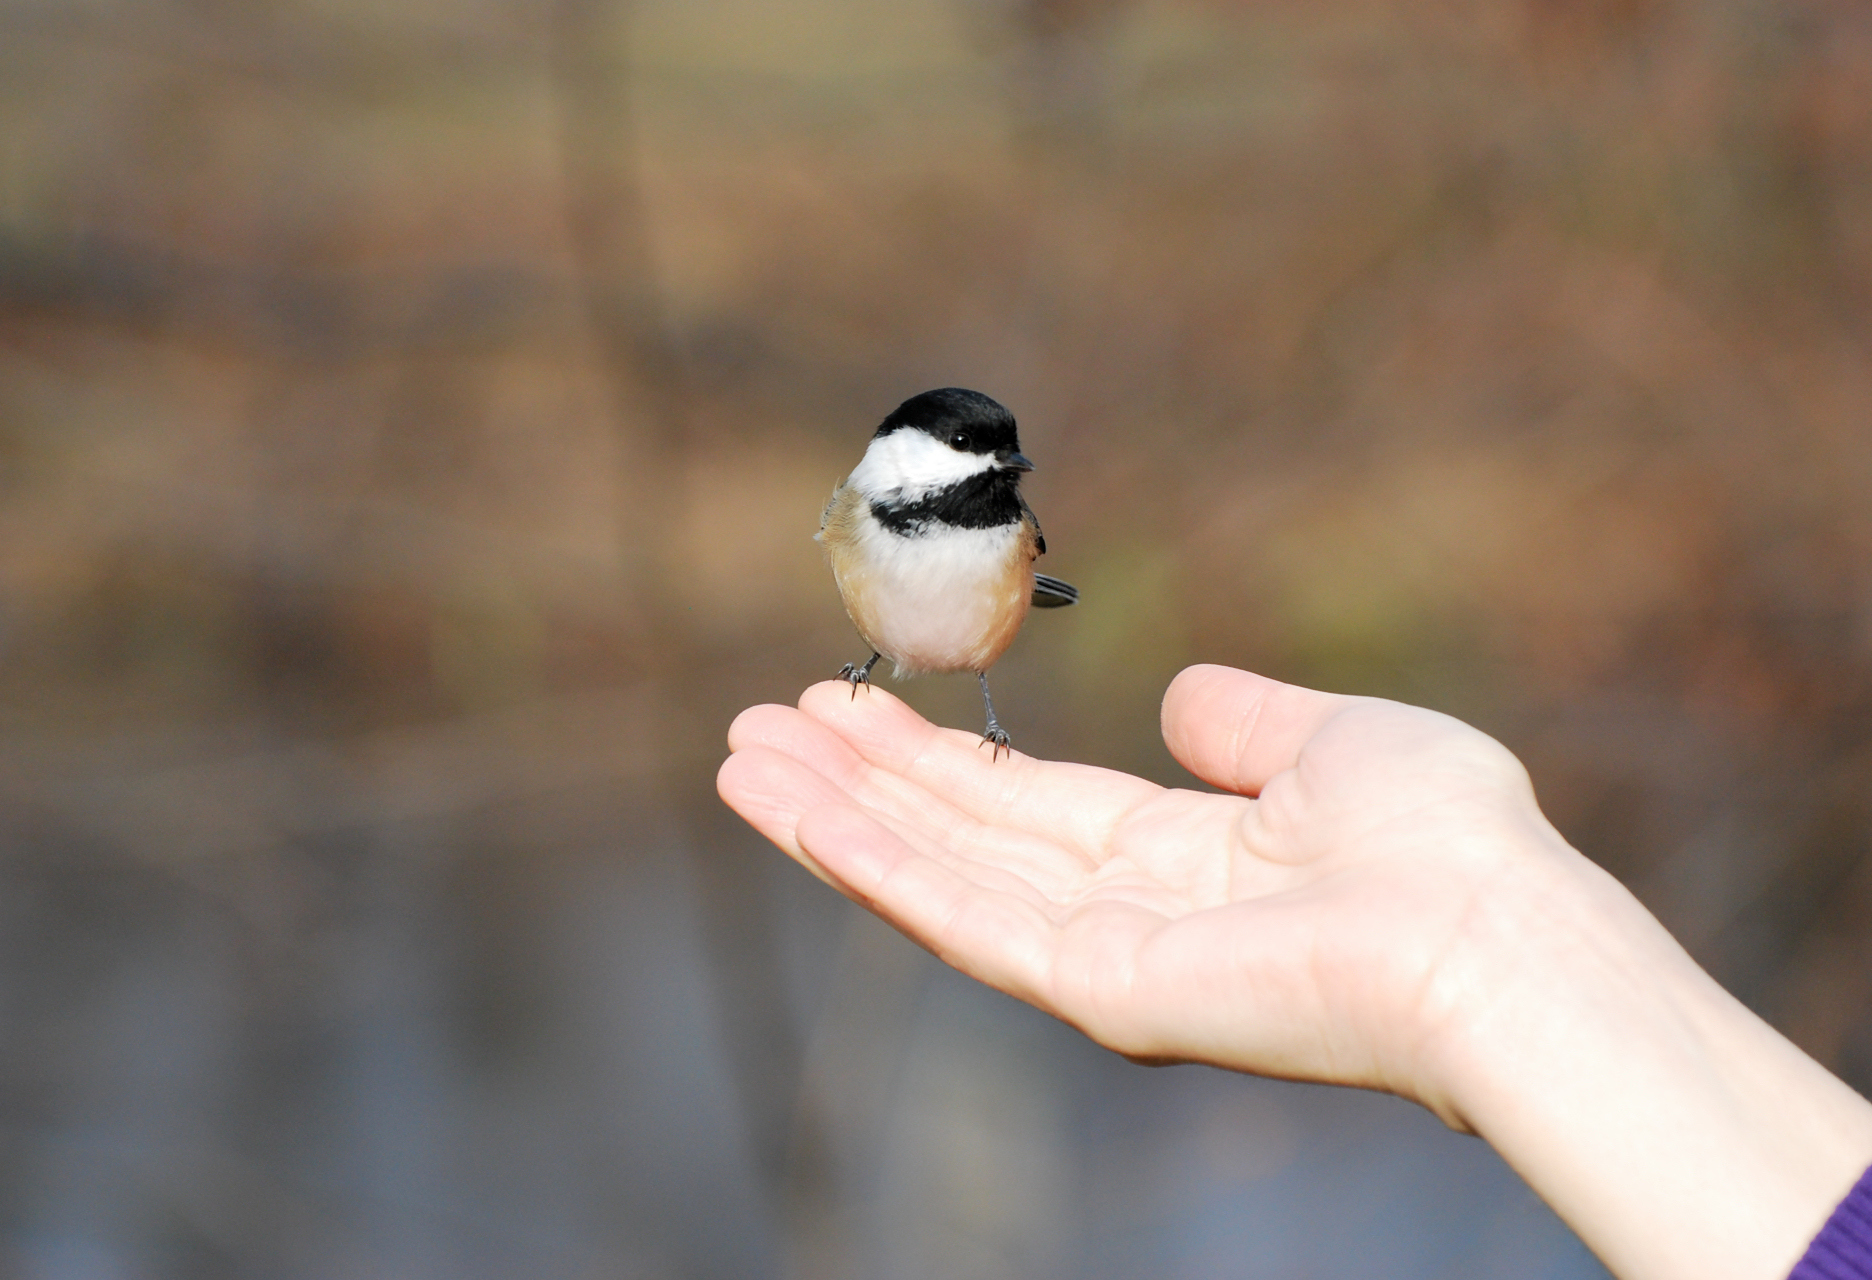 A Bird in the Hand is Worth Two in the Bush